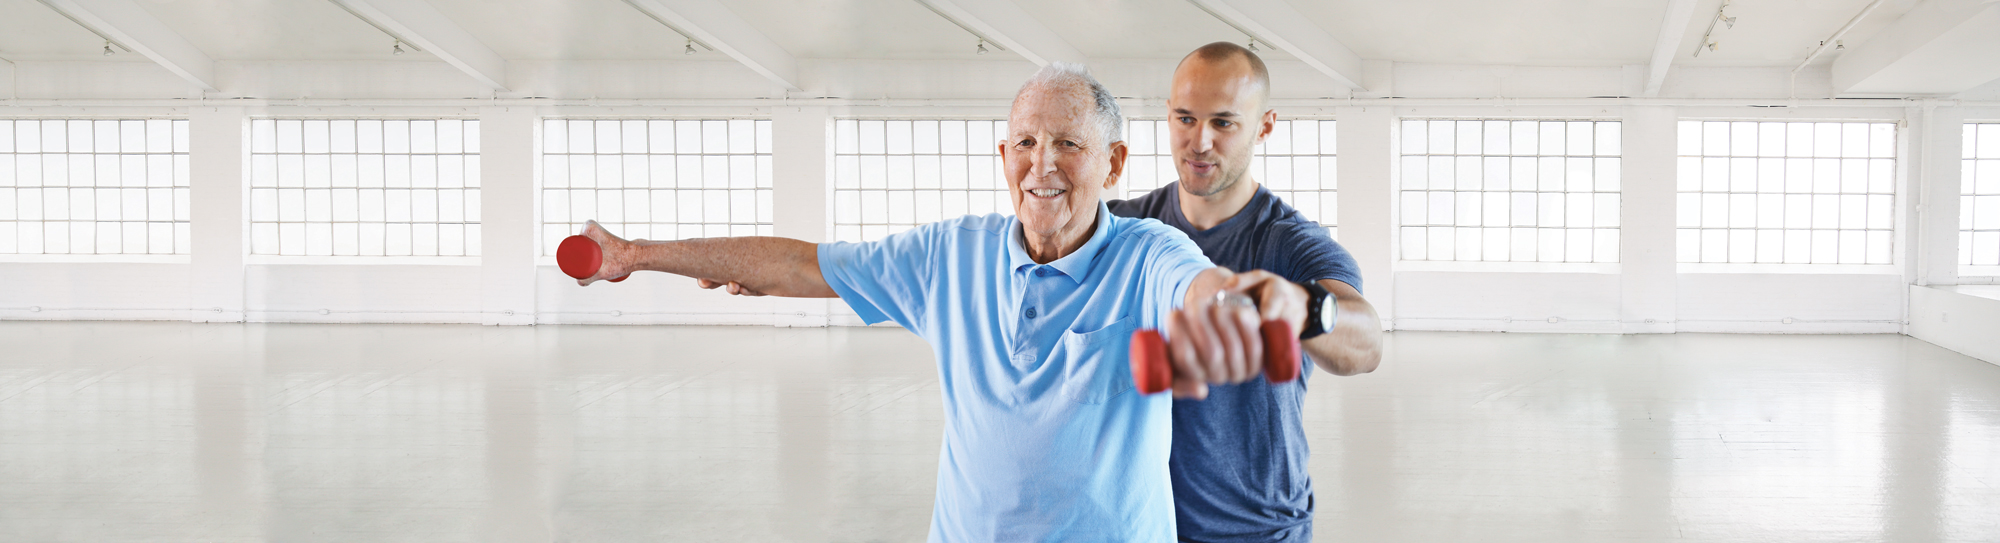 man helping senior work out